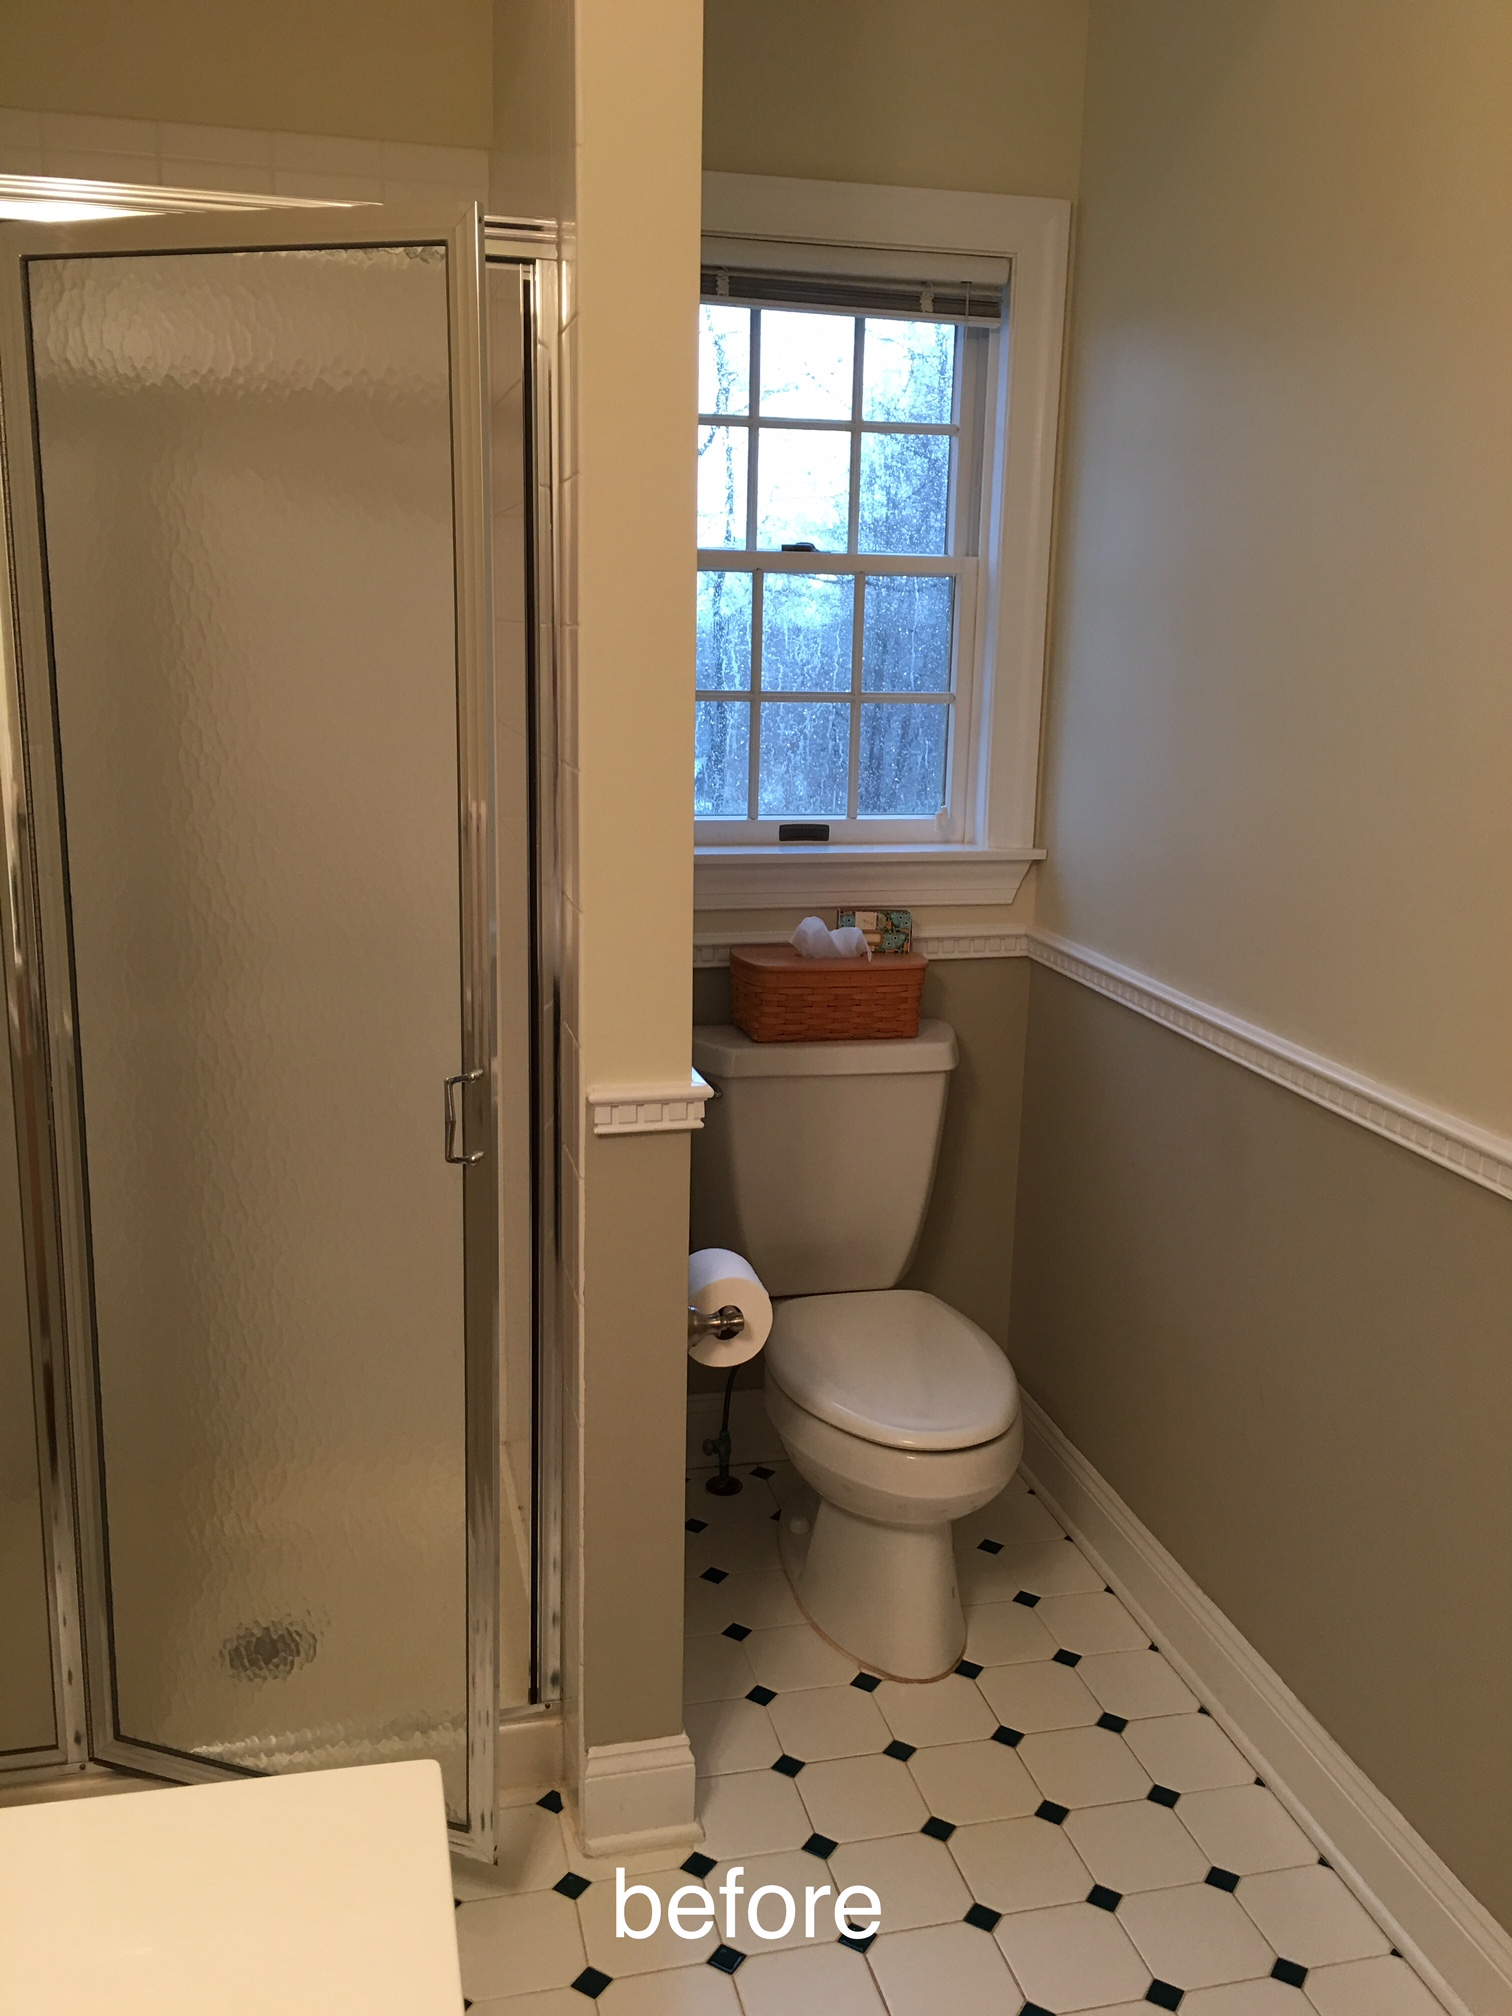 Vintage I wrapped the room in tile no baseboards to clean I hate cleaning baseboards Wrapping the toilet area in tile was important to me I never want to